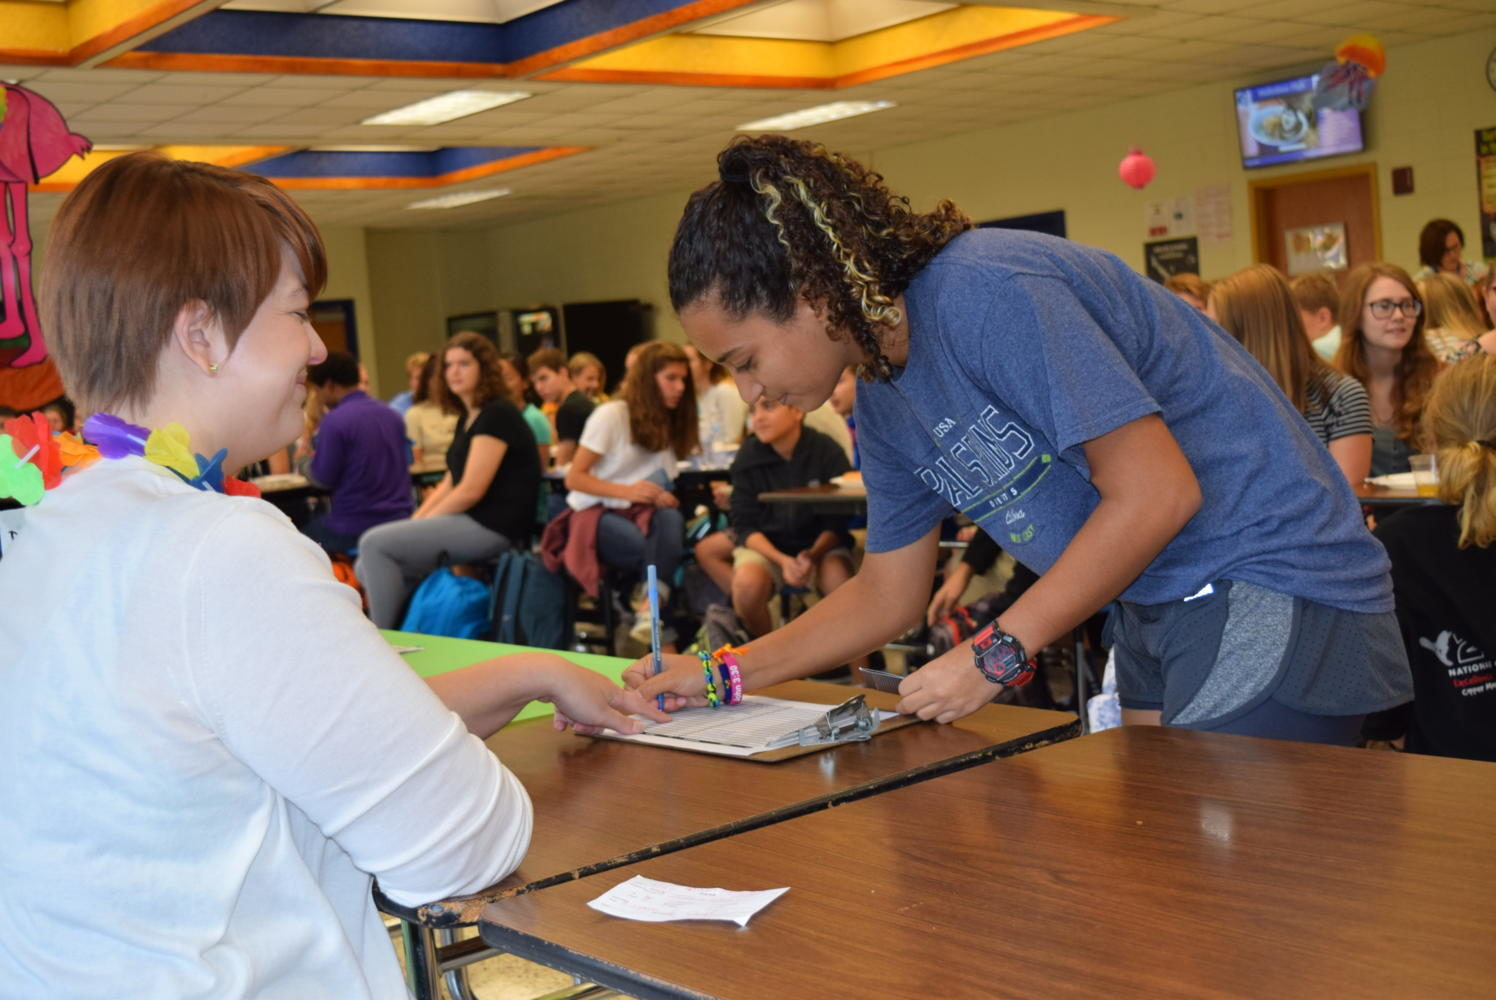 Assistant Librarian Emilia Mazzanti helps a student during the Summer Reading Celebration.